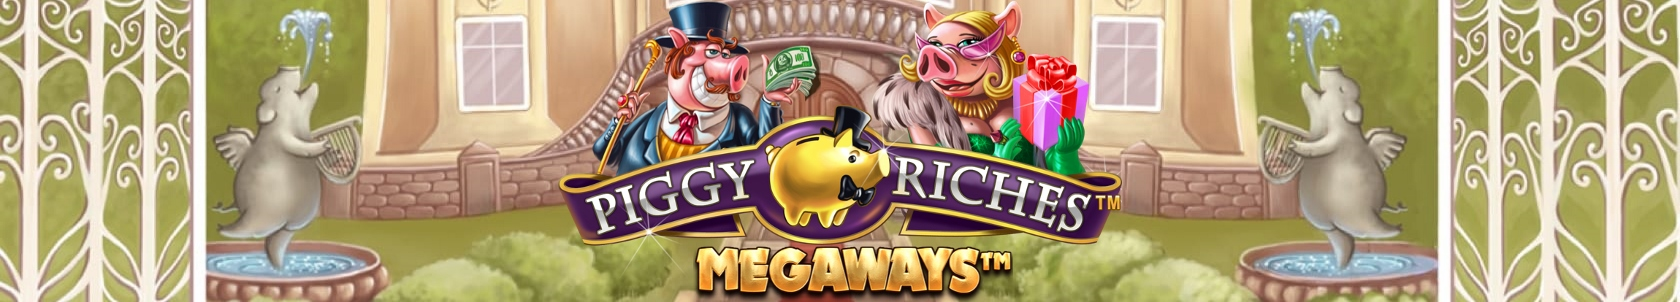 netent_piggy-riches-mw-cover-1900x444